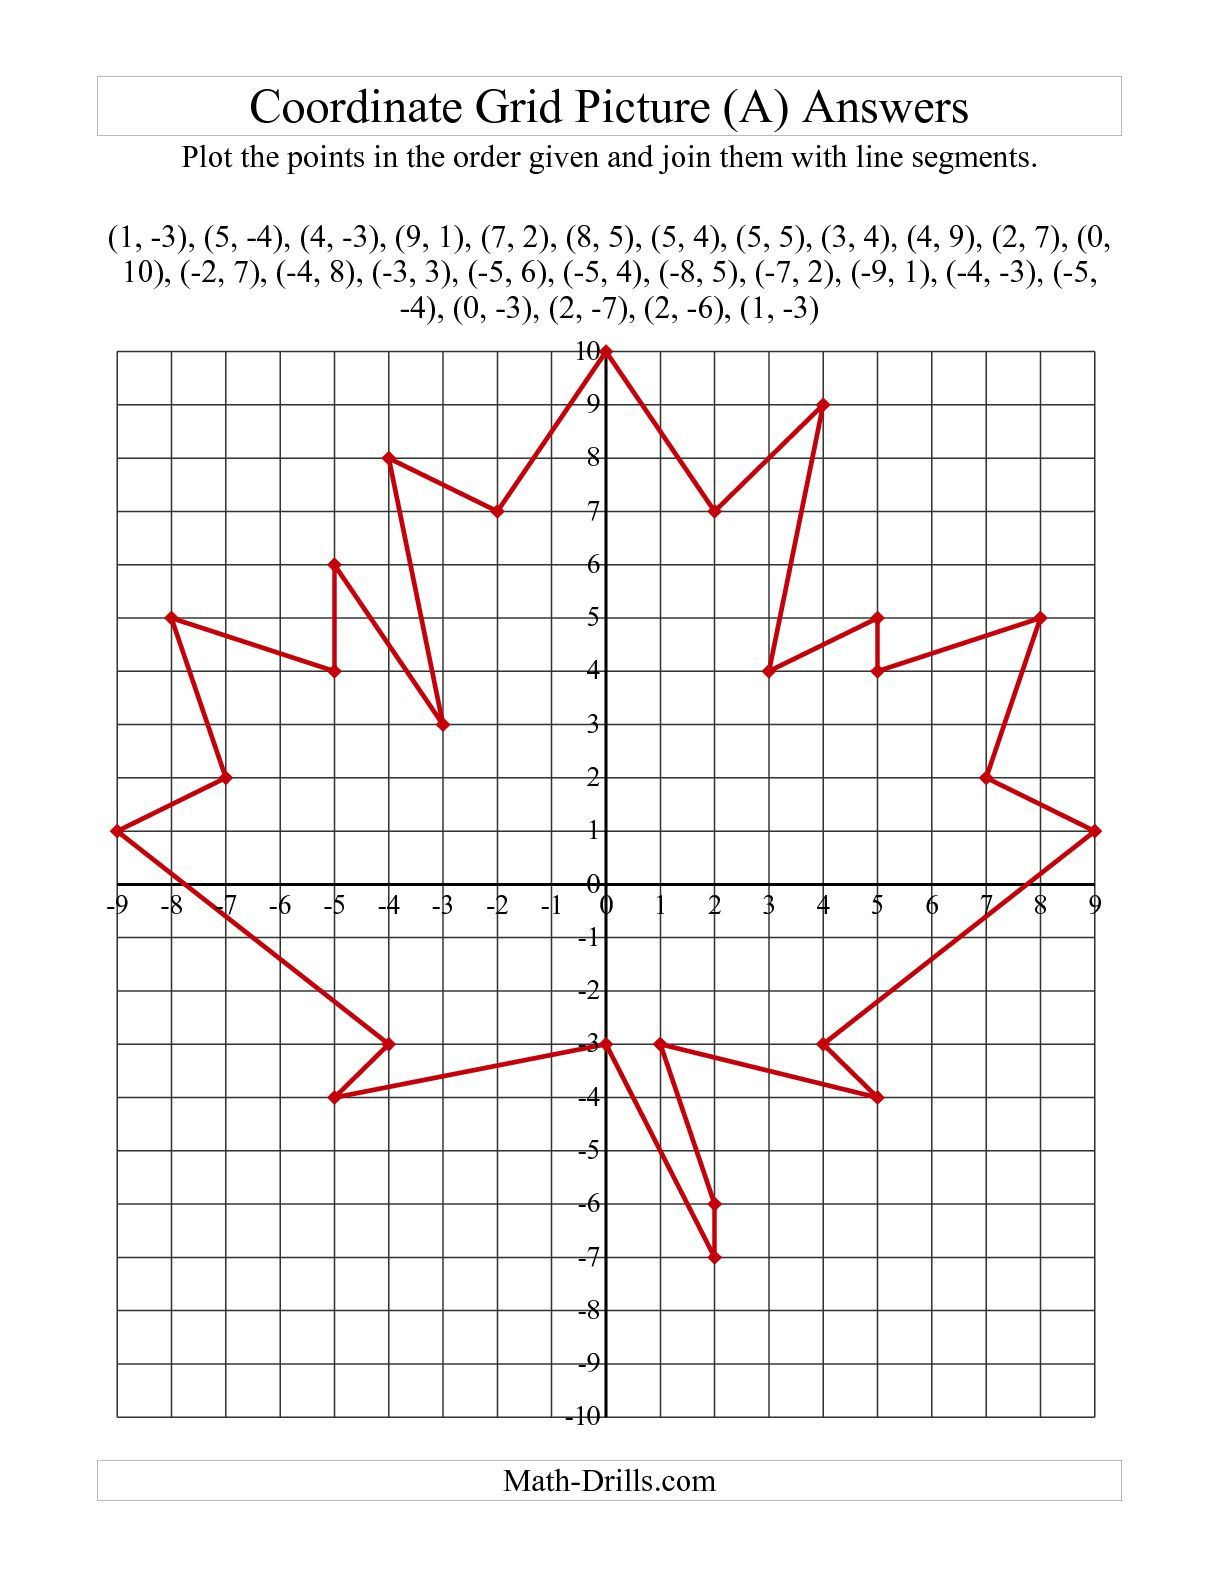 Coordinate Plane Worksheets Middle School the Plotting Coordinate Points Art Red Maple Leaf A